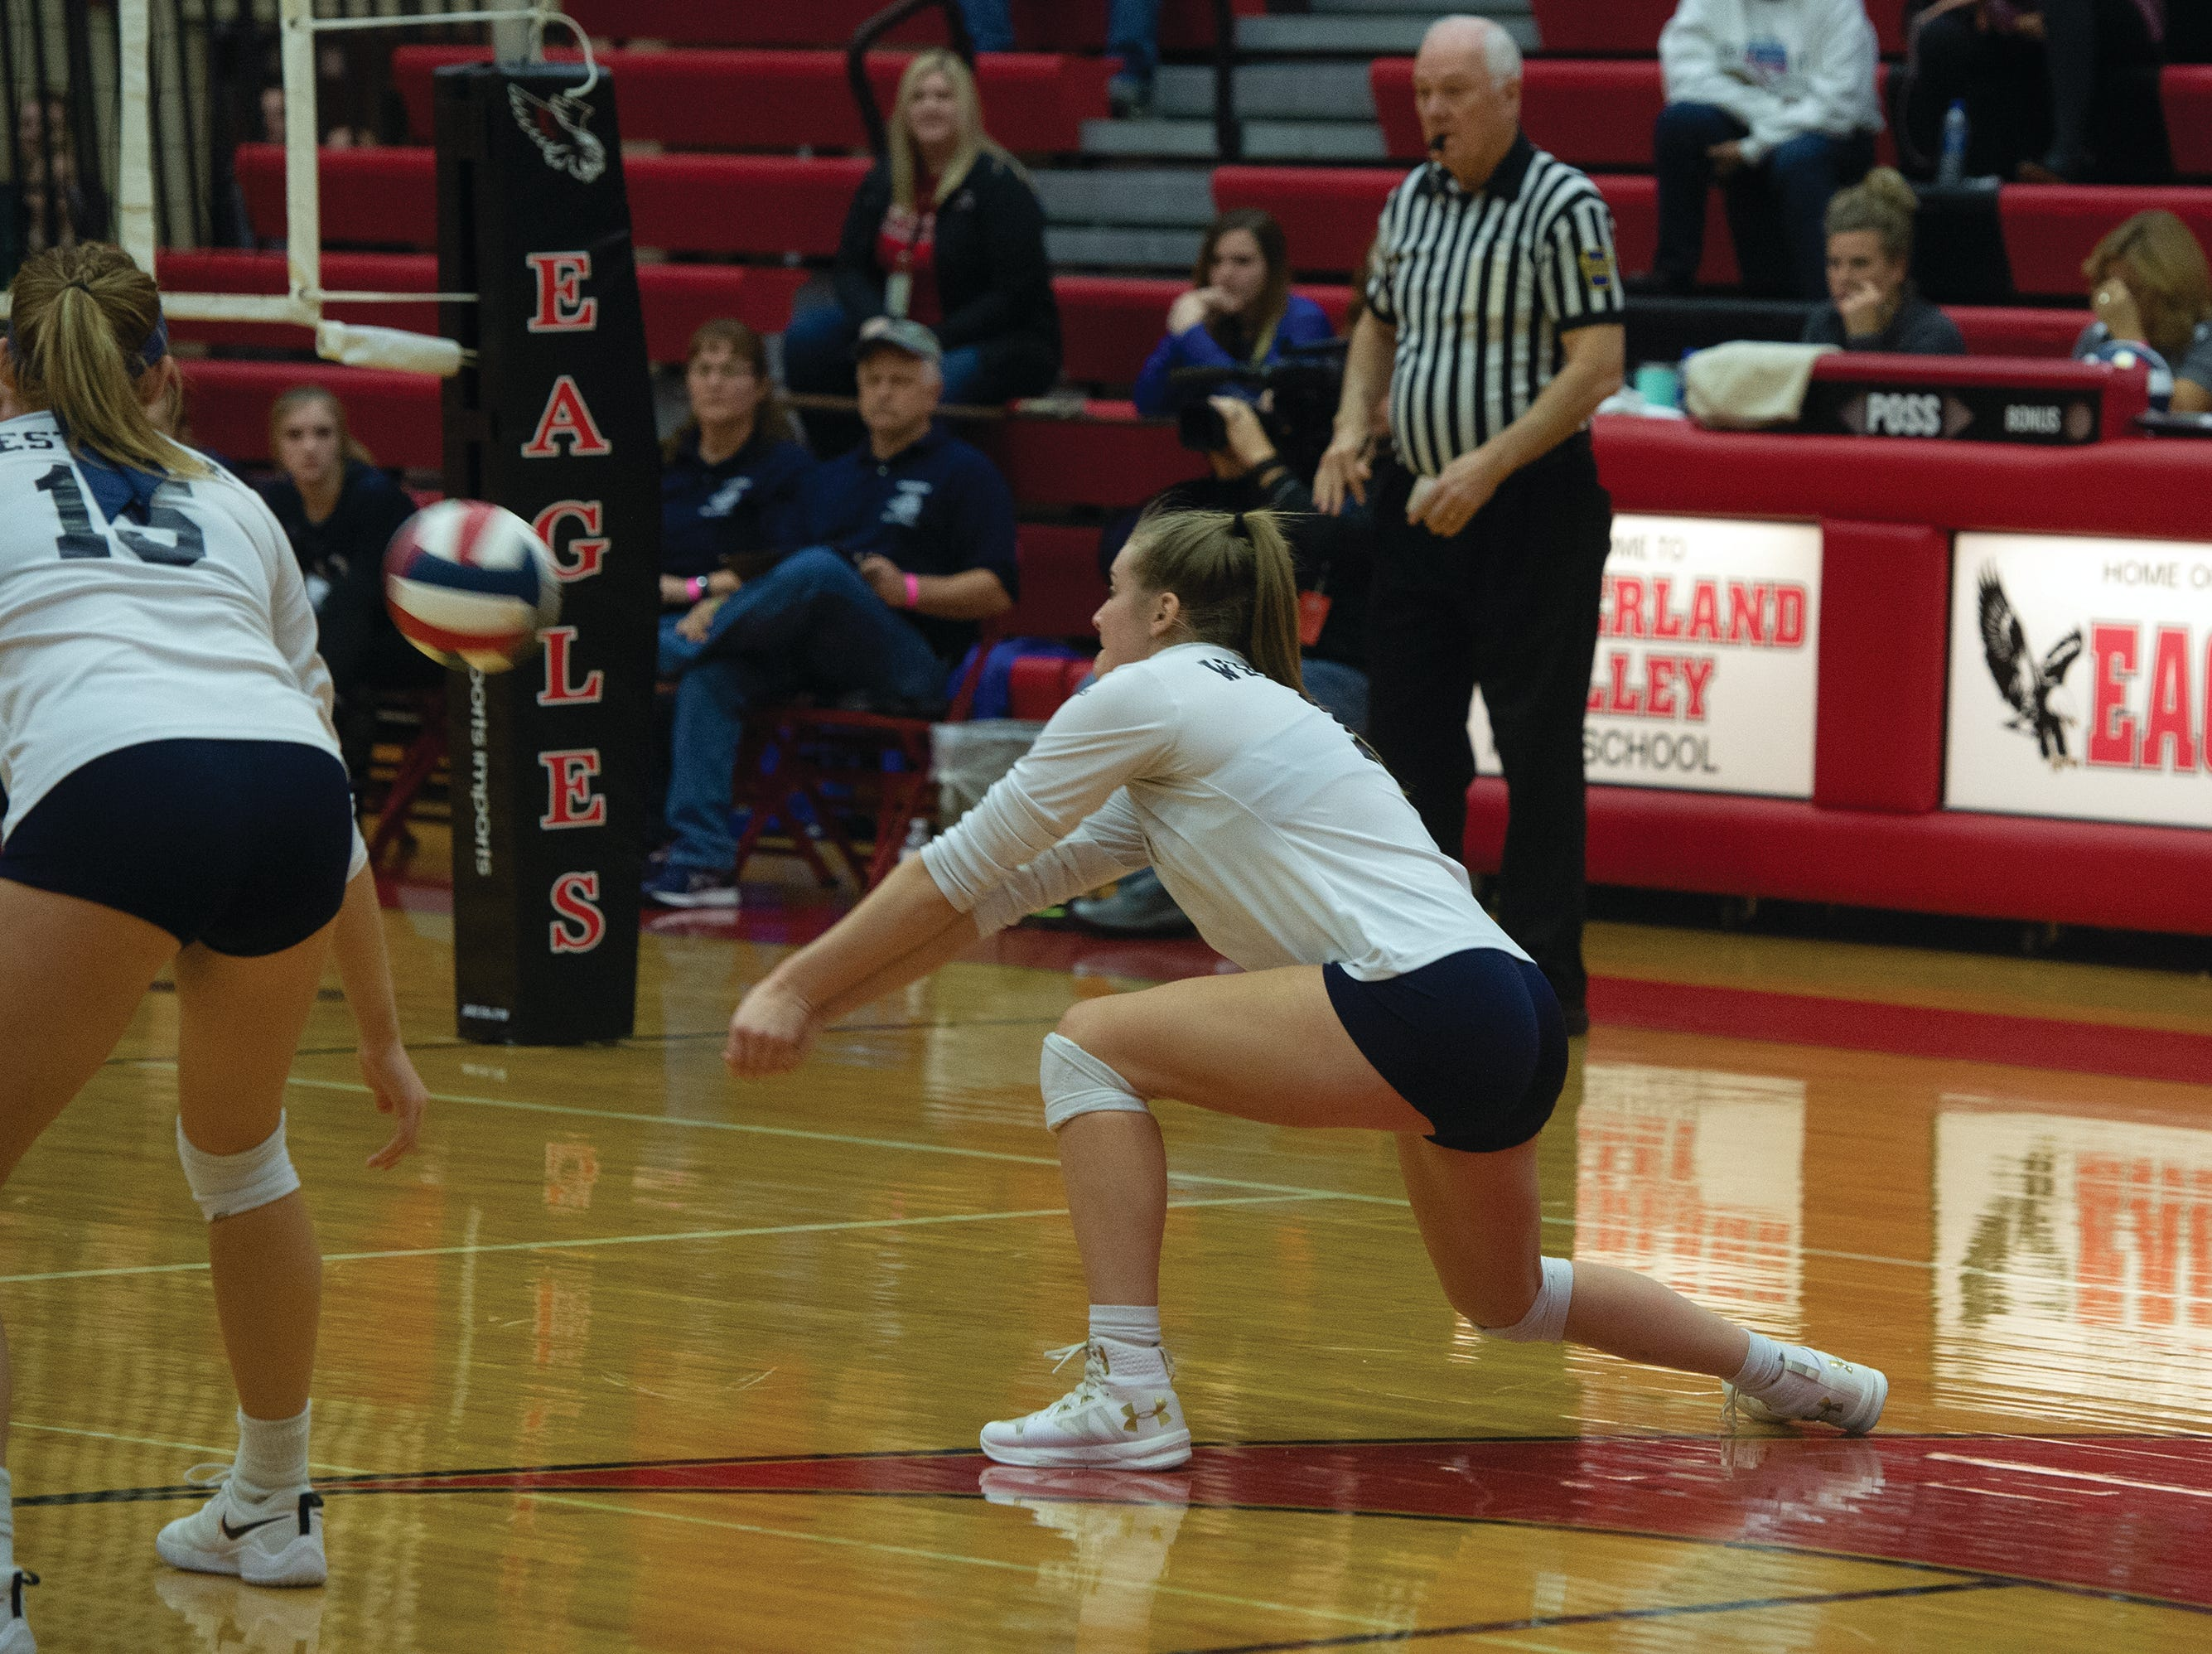 West York's Georgianna Kahley prepares to pass a Warren serve near the end of Saturday's PIAA Class 3A girls' volleyball championship at Cumberland Valley High School.